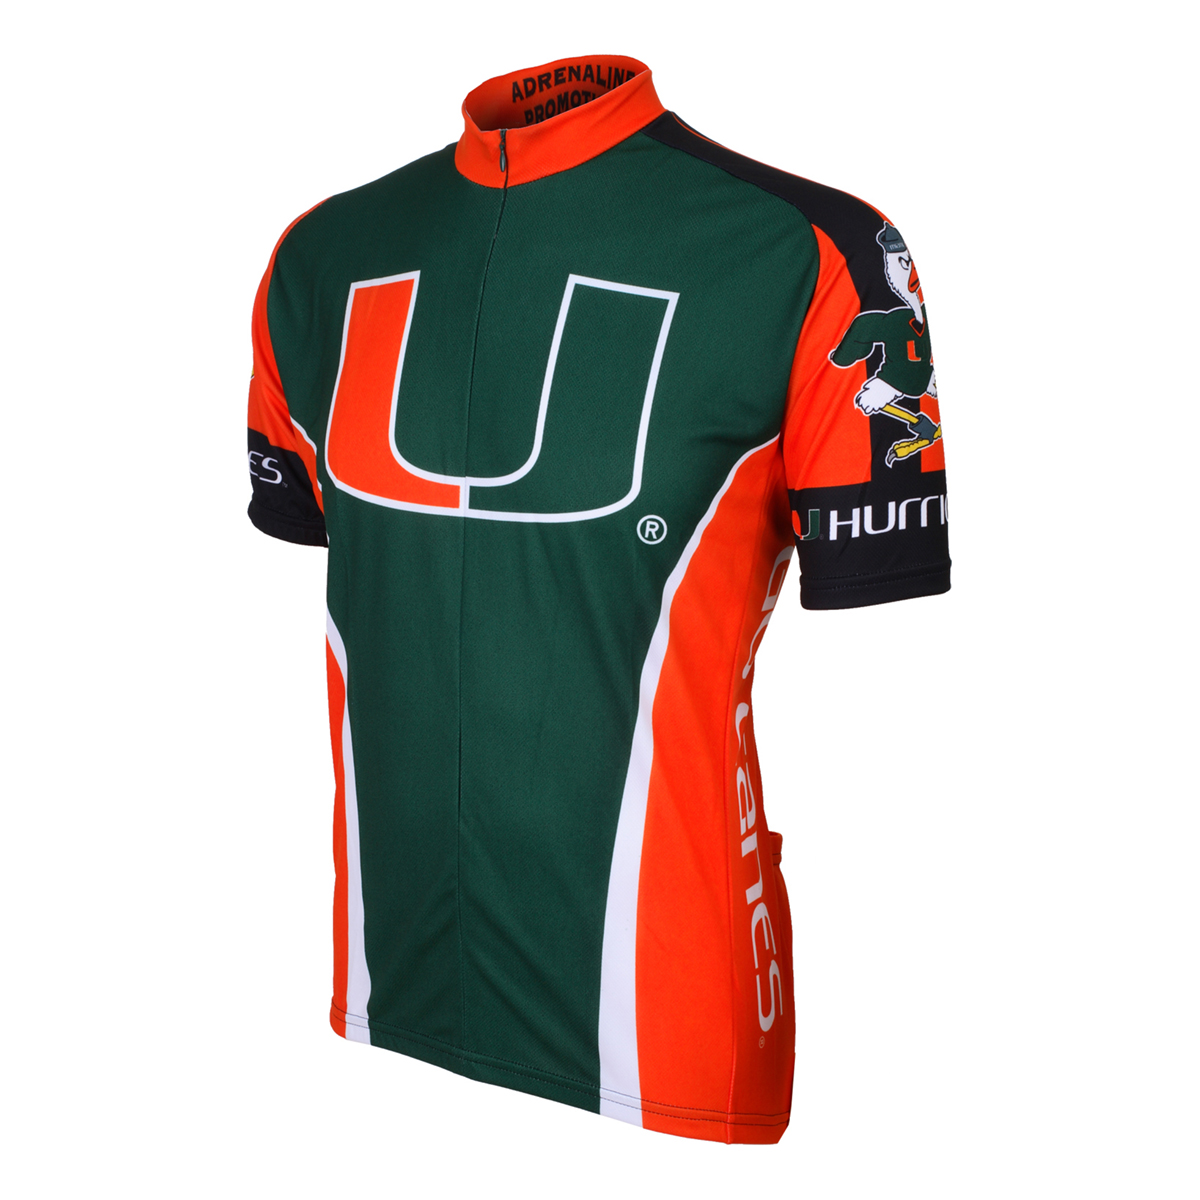 Adrenaline Promotions University of Miami Hurricanes Cycling Jersey